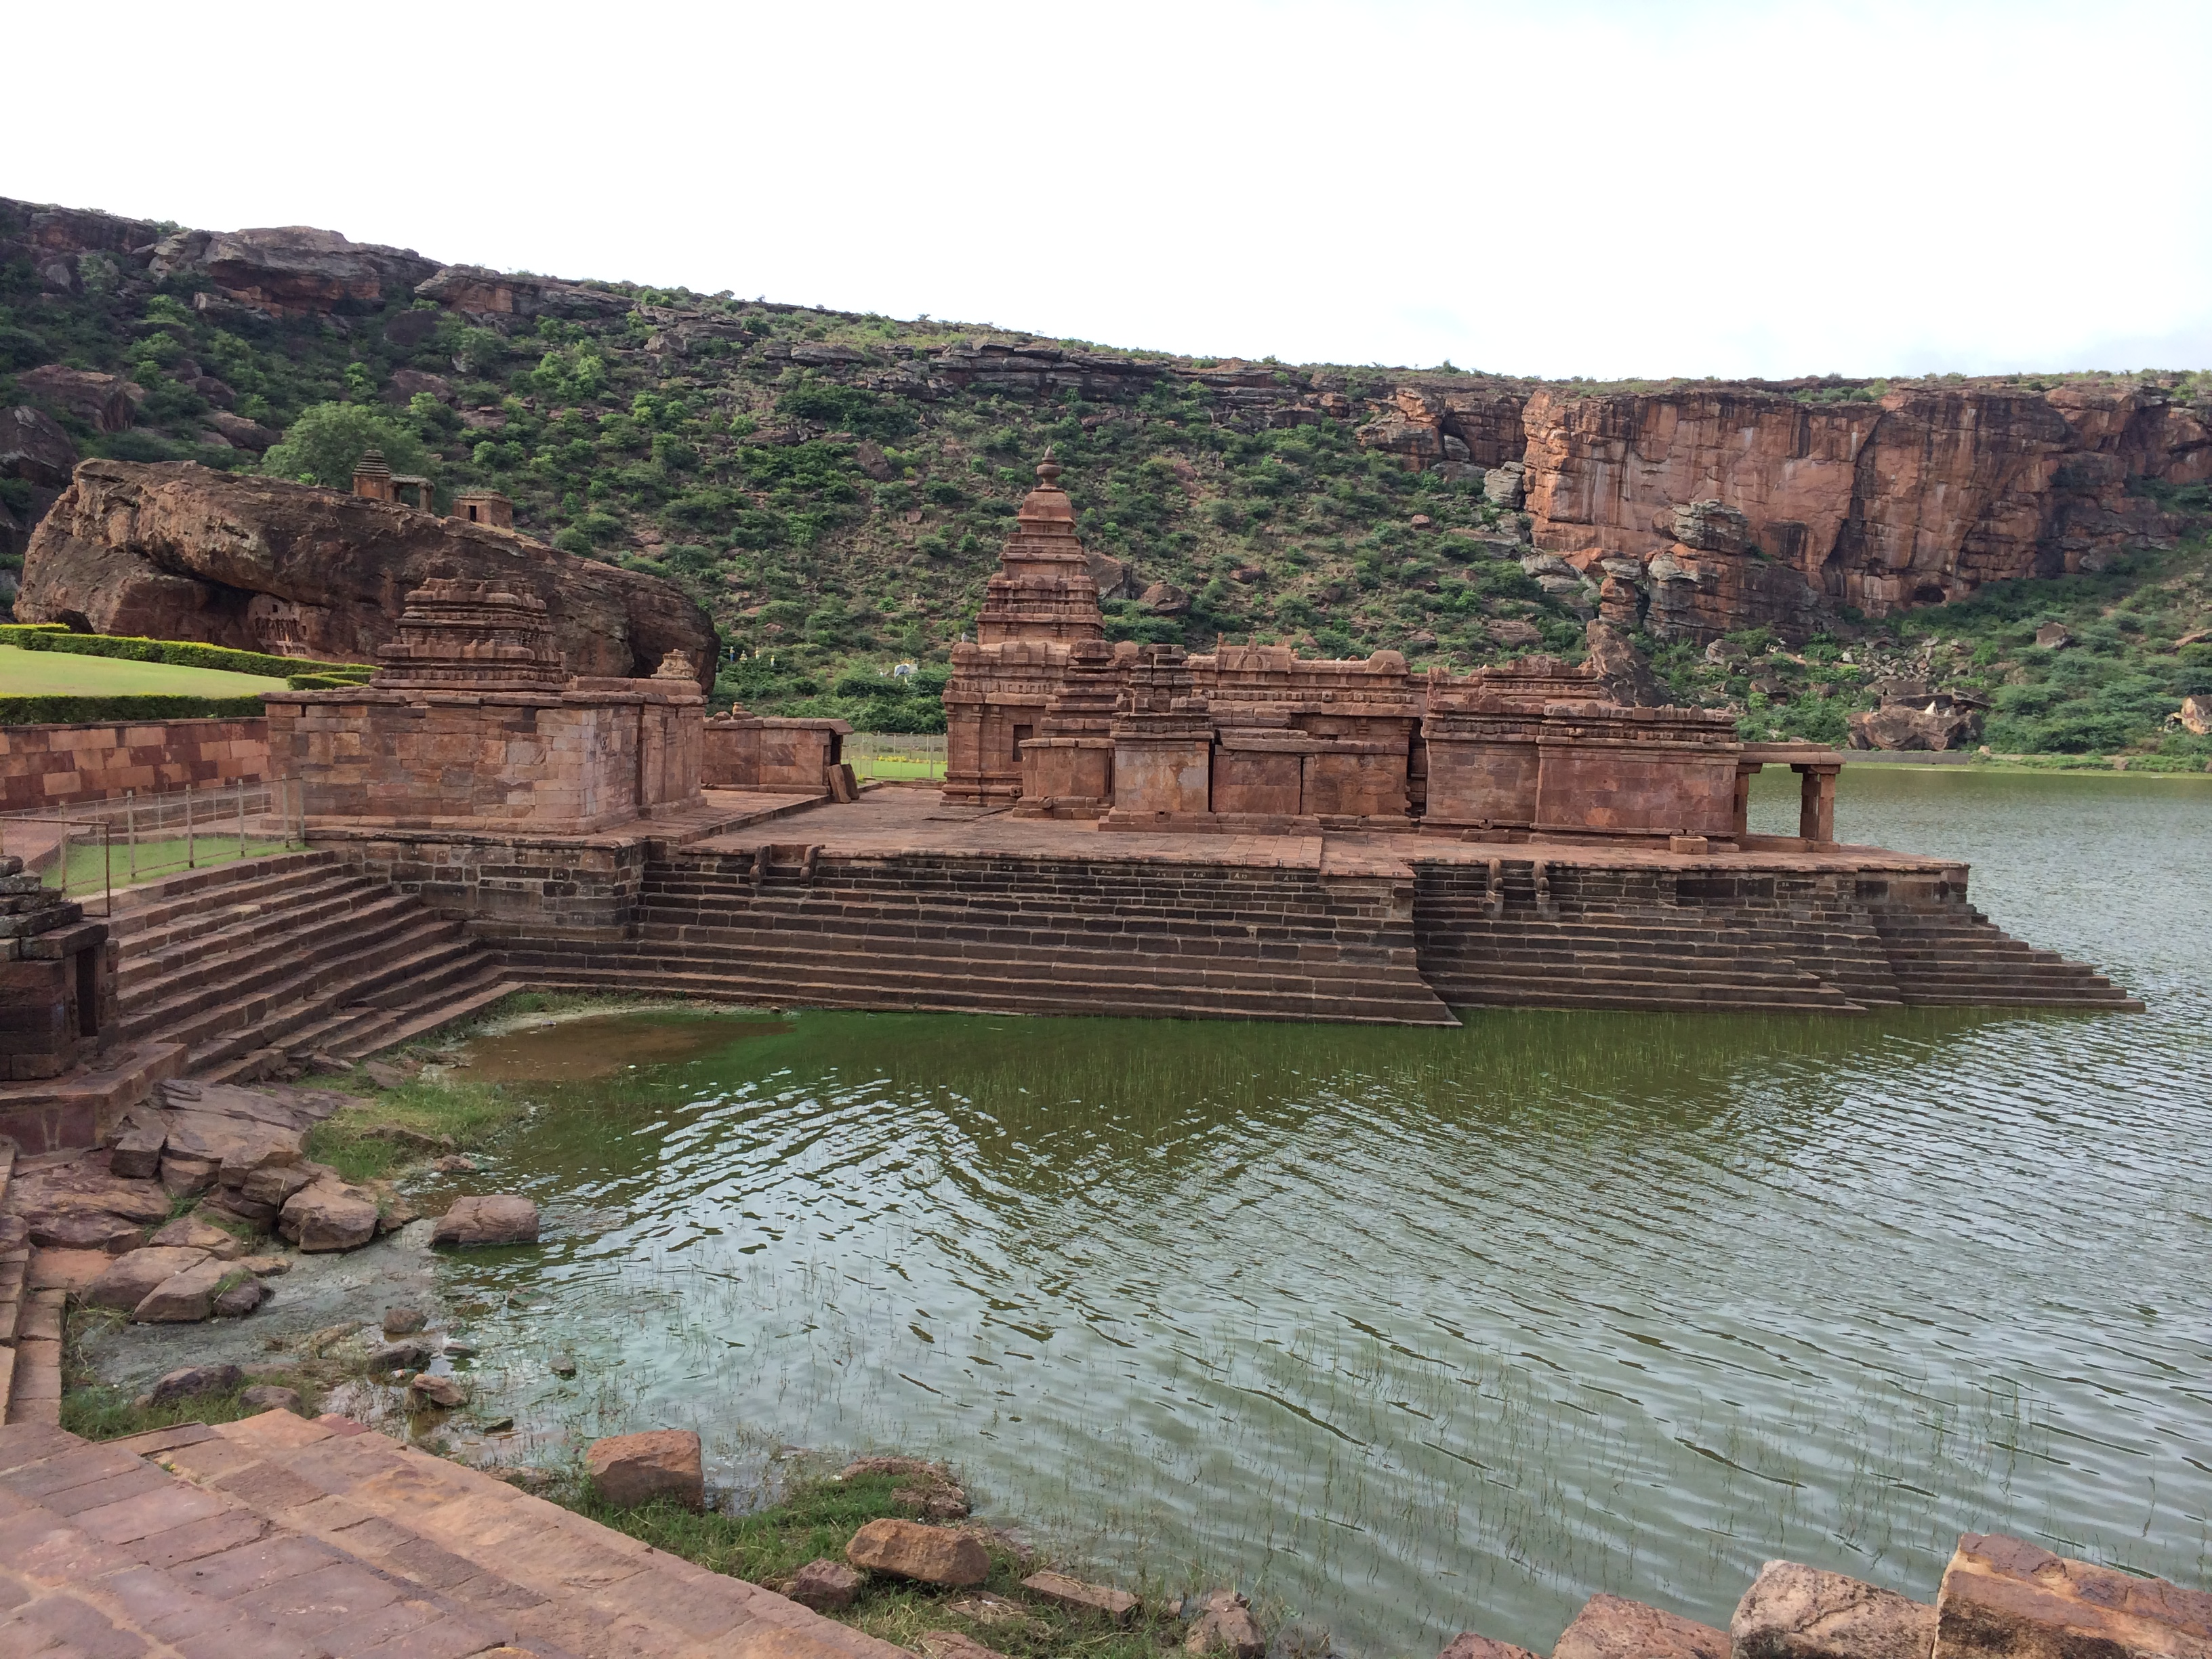 Aihole, Badami, Pattadakal – In 48 Hrs